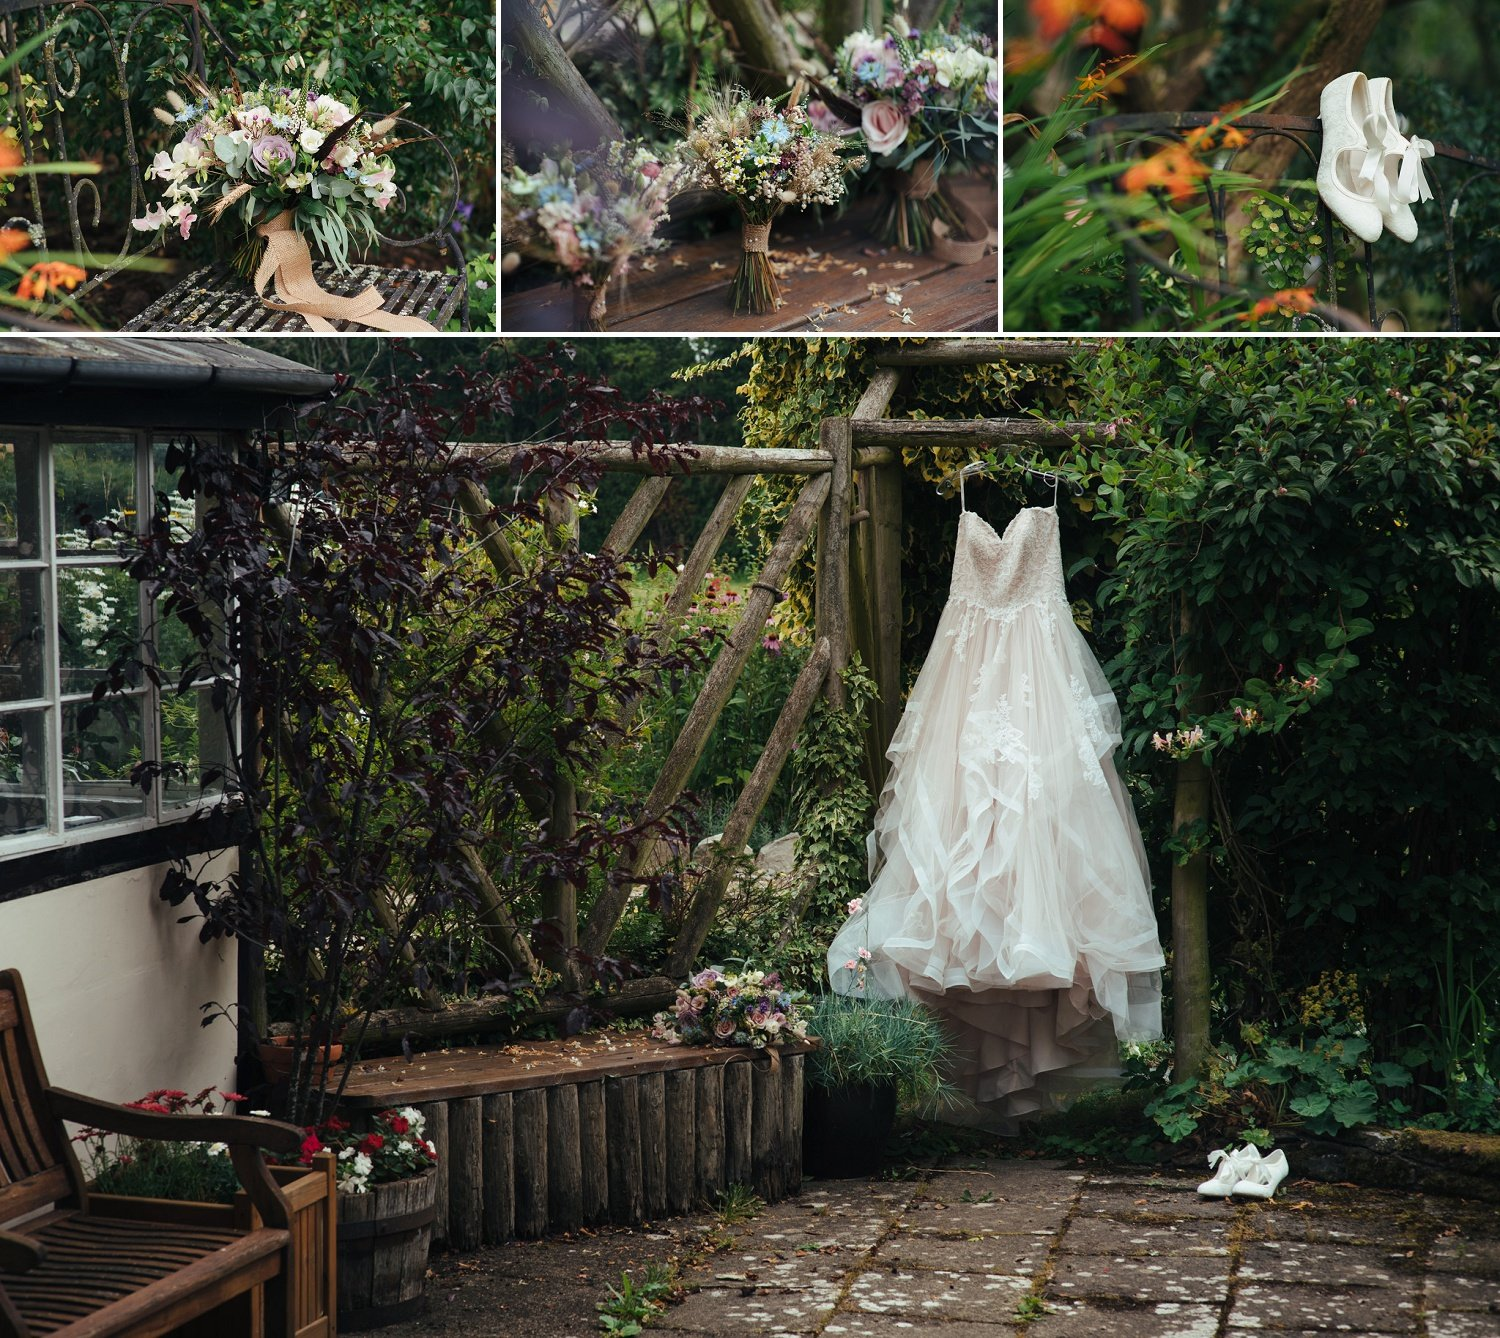 Wedding dress hanging in the gardens at Yew Tree Cottage near Pembridge. Bouquets by Issy and Bella florst.